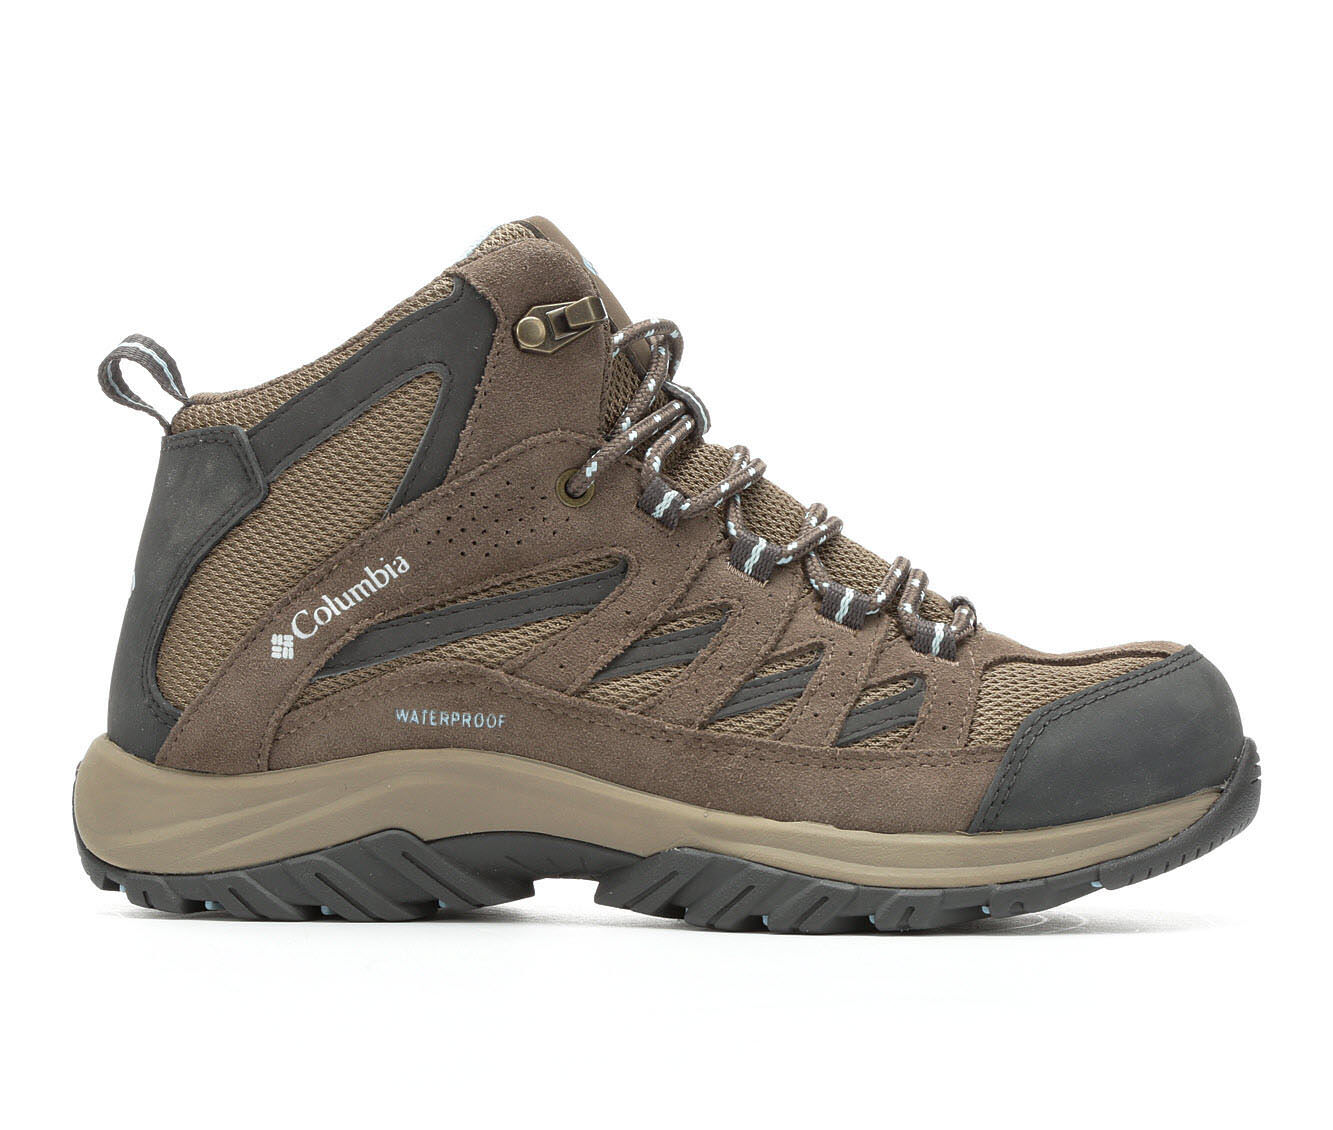 Women's Columbia Crestwood Mid WP Hiking Boots Pebble/Oxygen